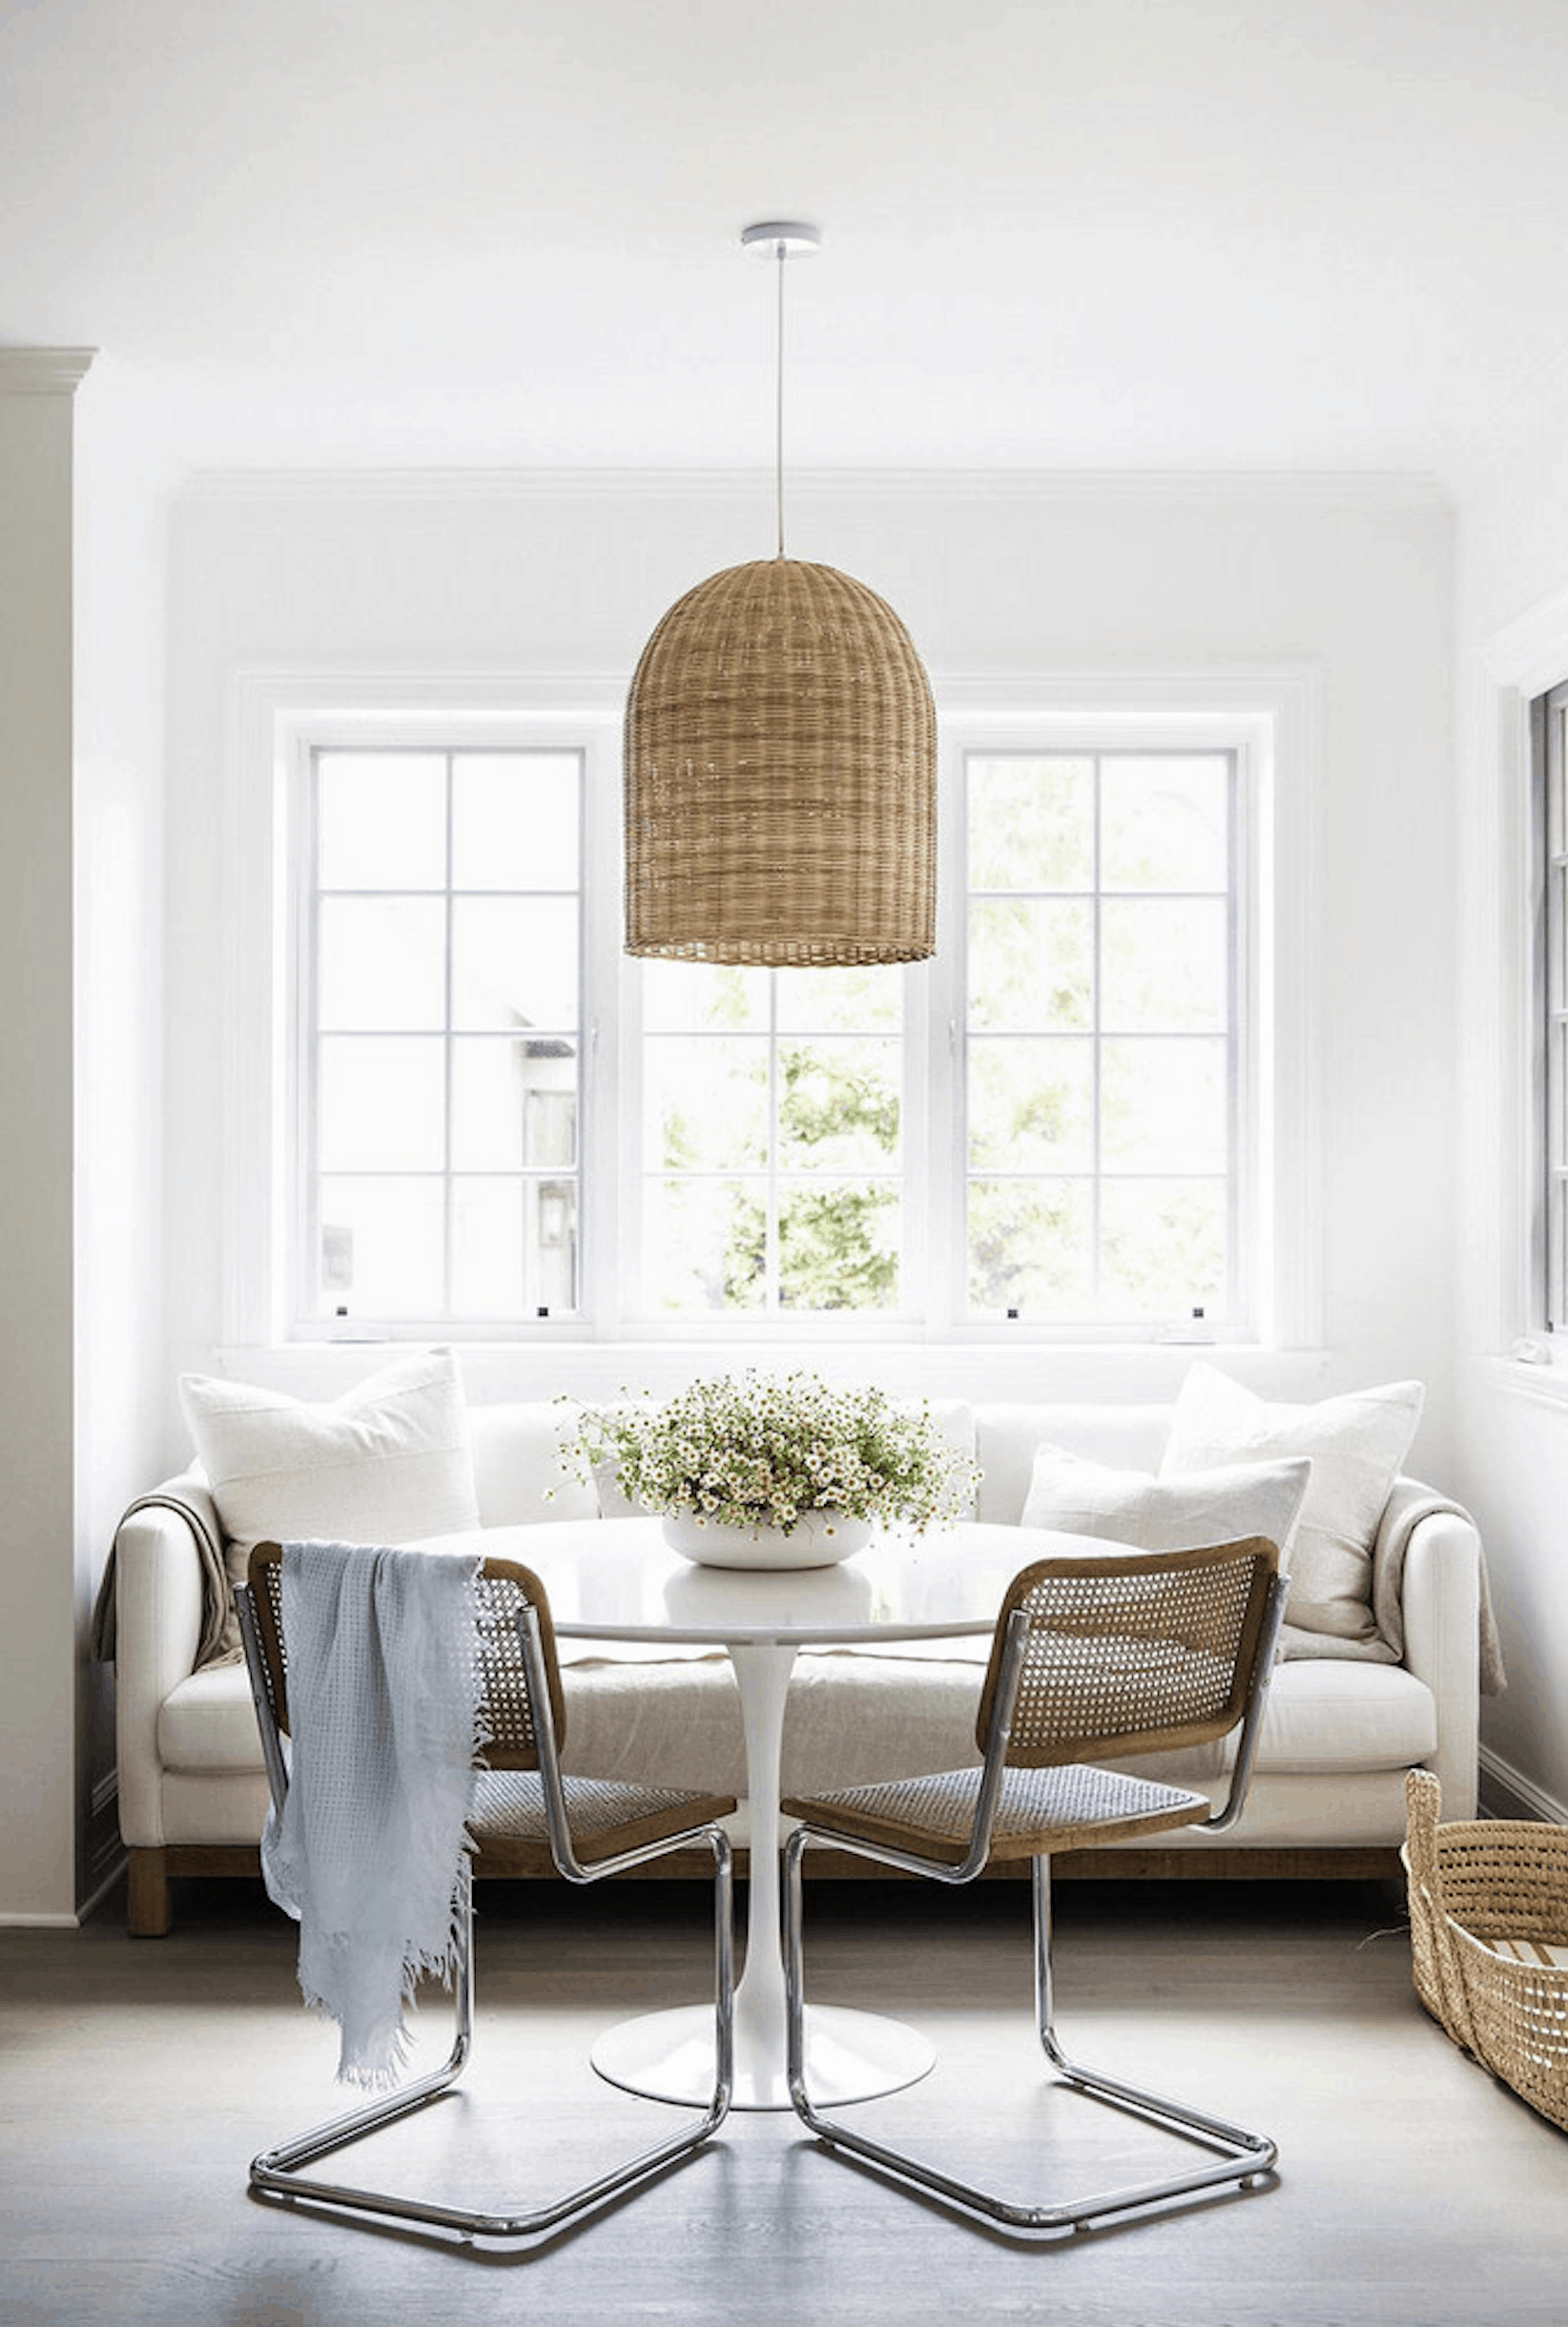 Try A Trend: Cane & Rattan Home Decor